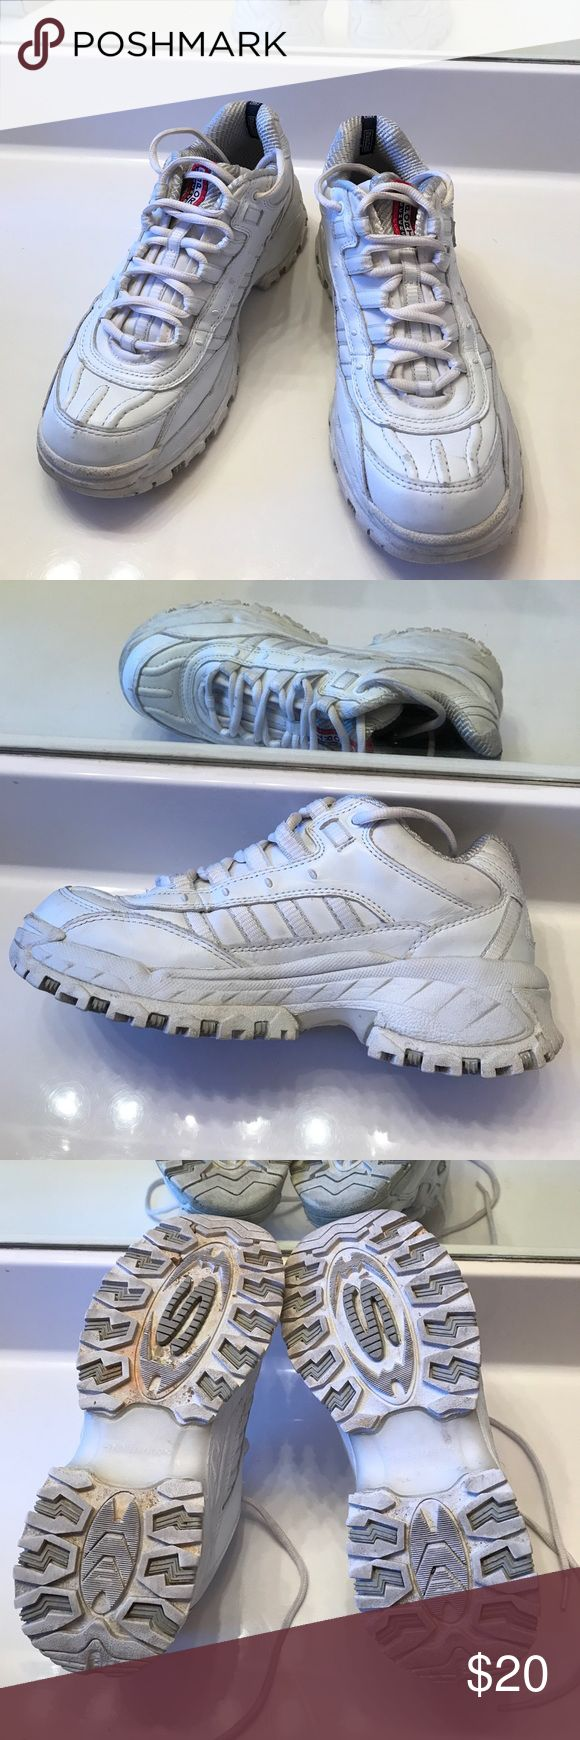 White Skechers Sized 7.5 Shoes Athletic Shoes